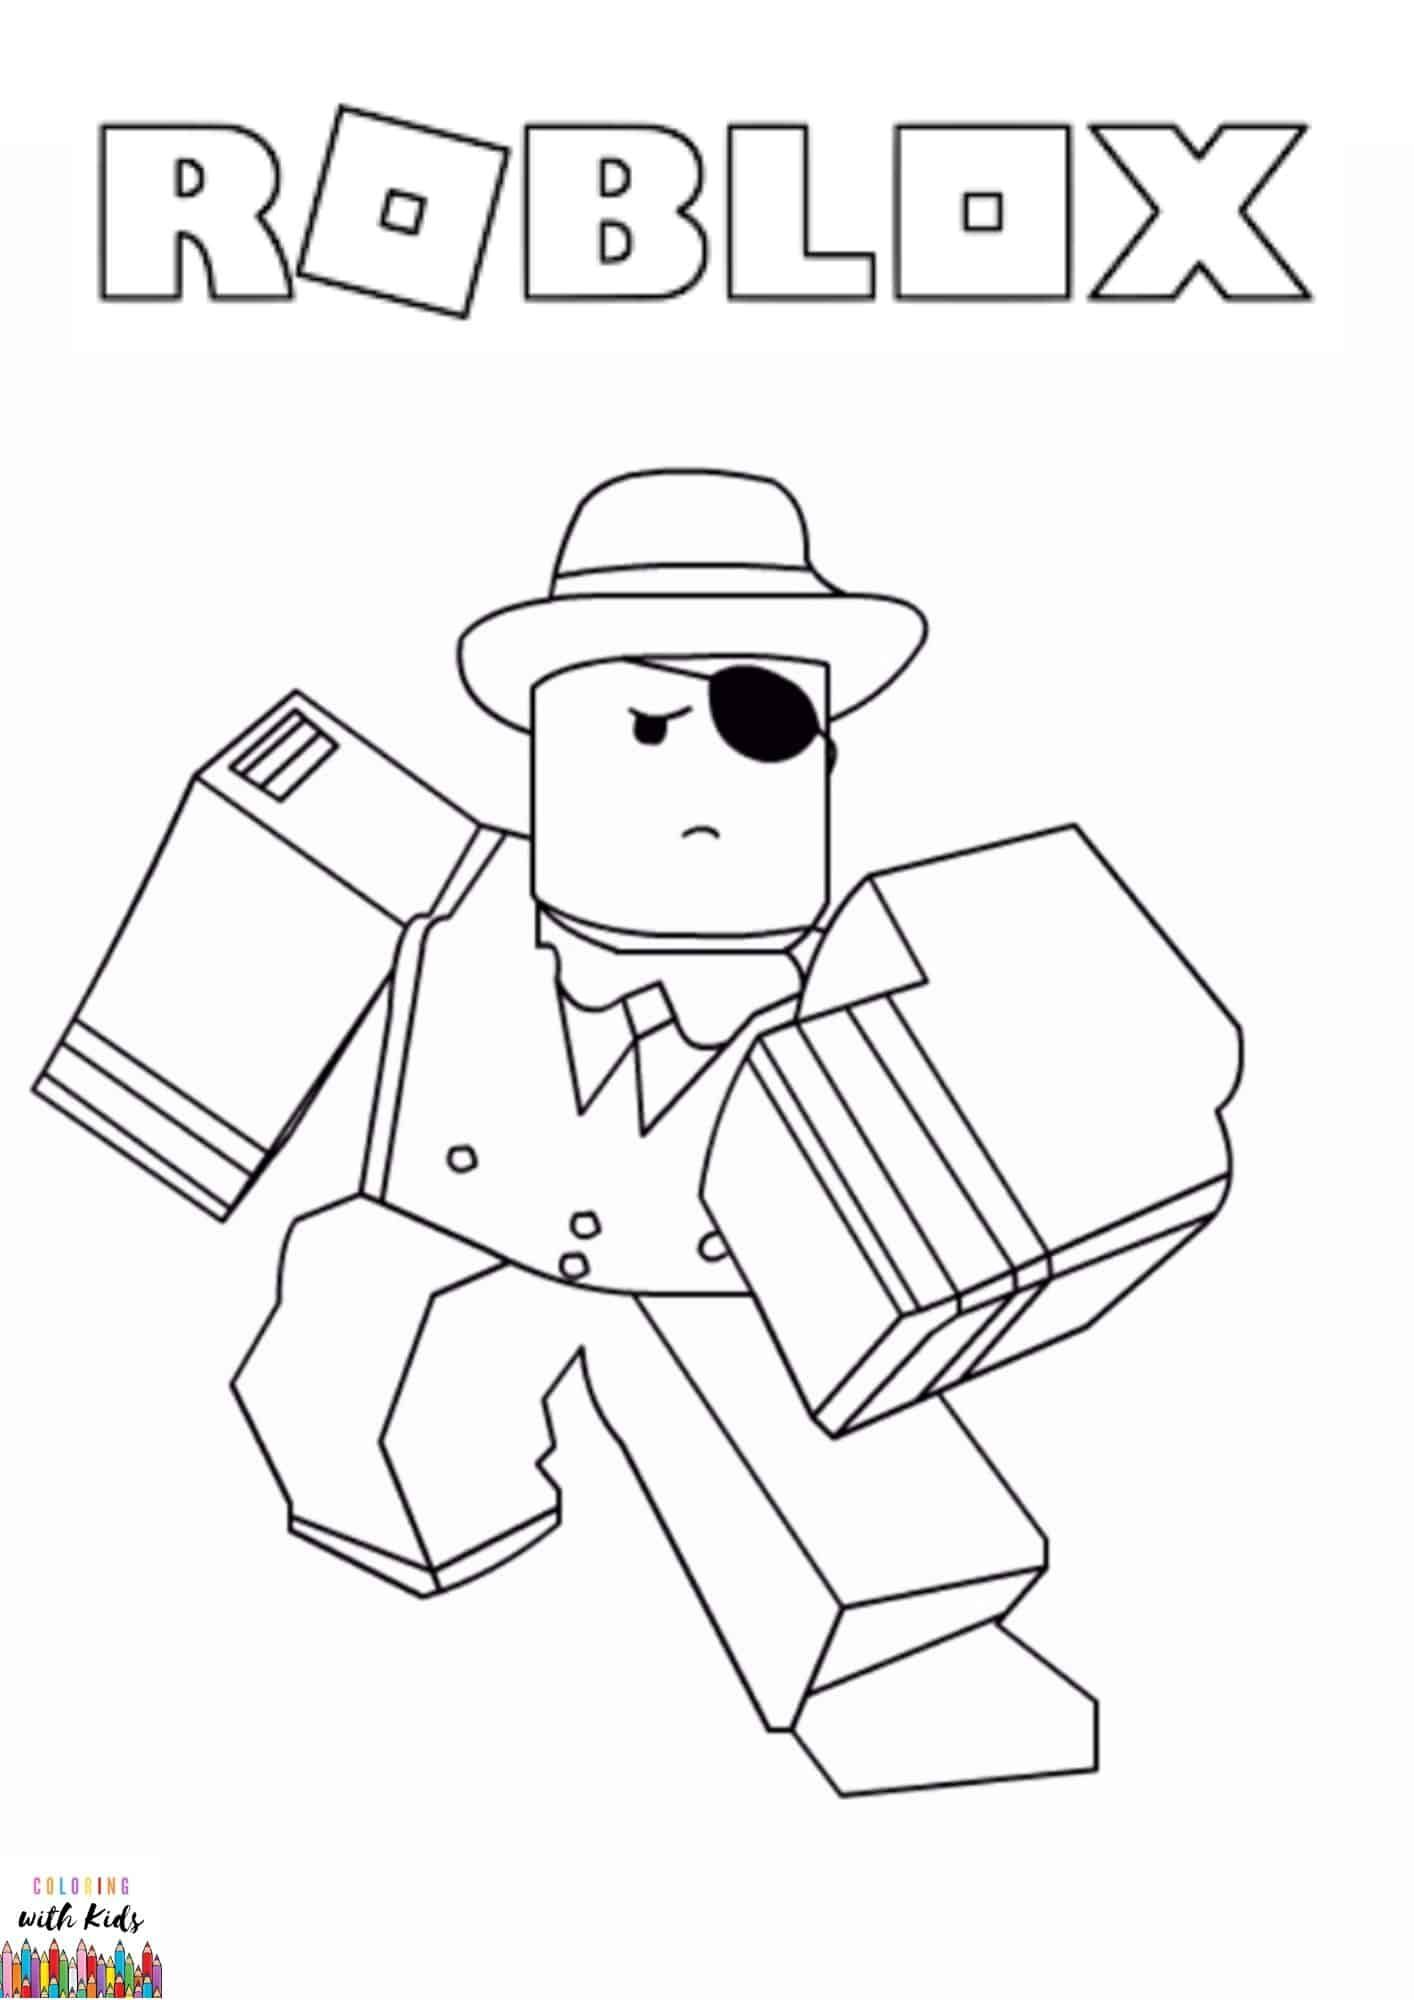 Roblox Coloring Page Image Credit Roblox Avatar Drawing By Yadia Chenia Permission Fo Avengers Coloring Pages Coloring Pages Coloring Sheets For Boys